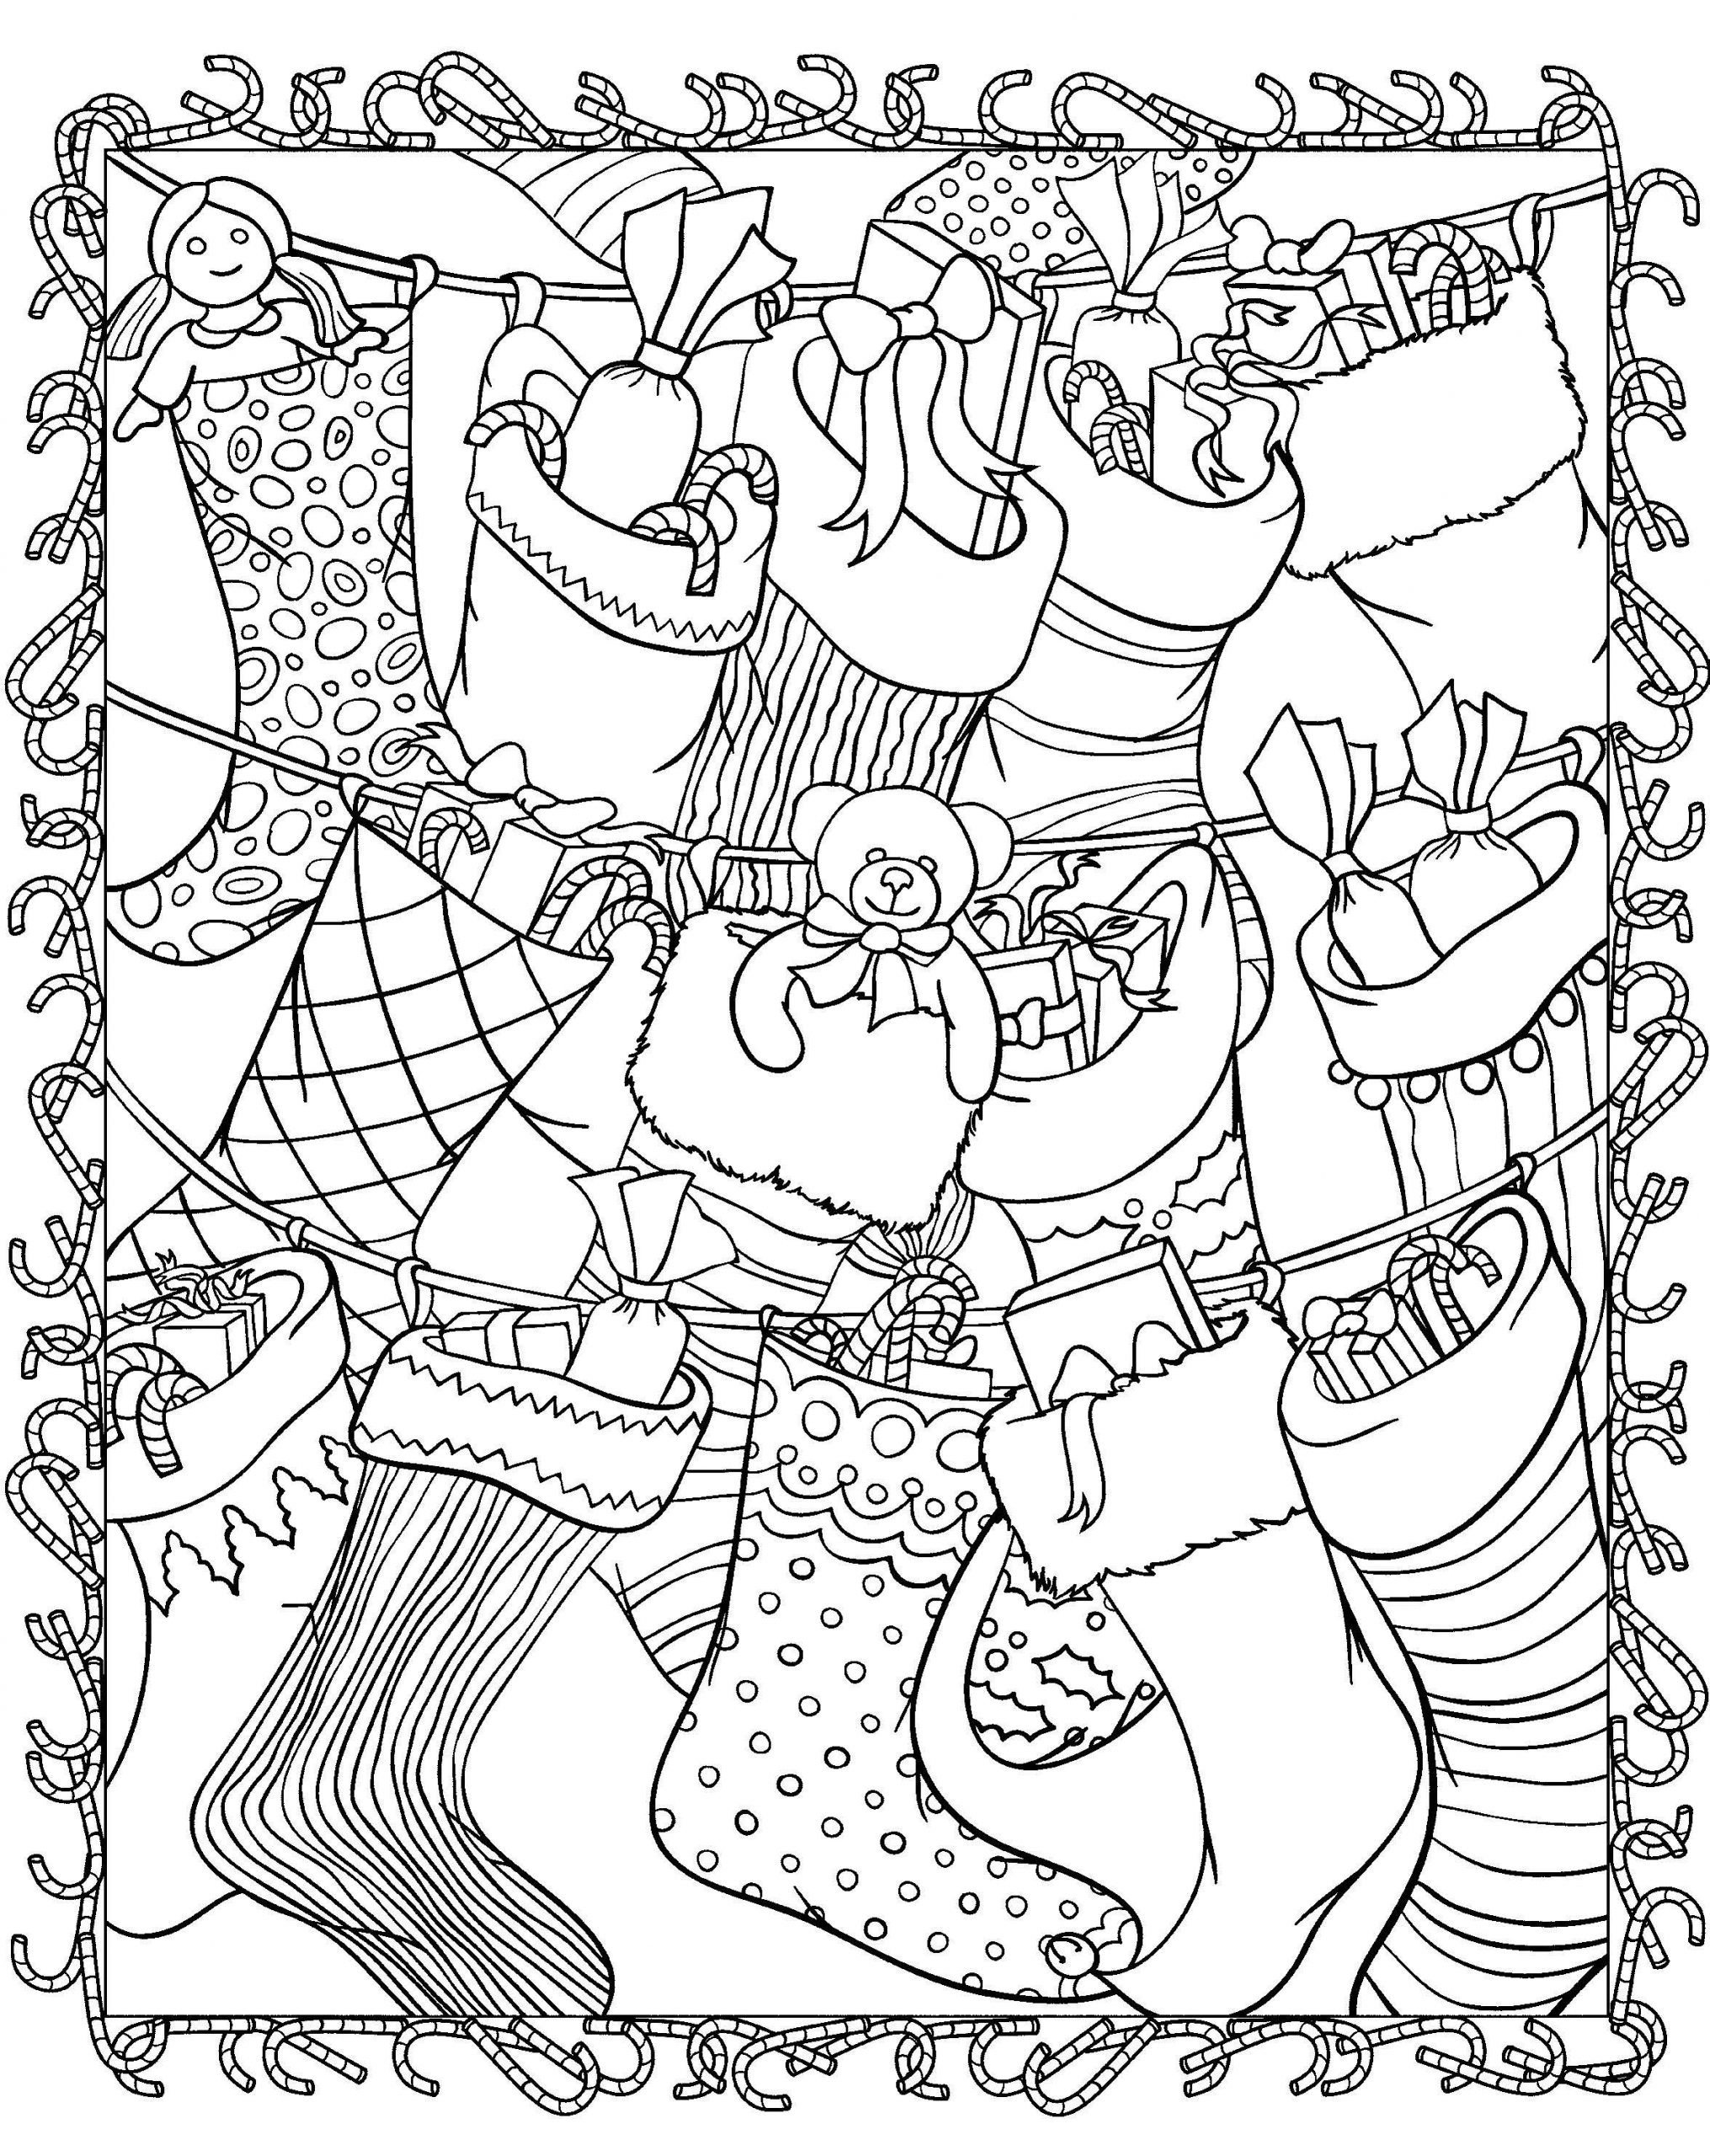 printable coloring worksheets for middle schoolers pages school sheets photo scaled